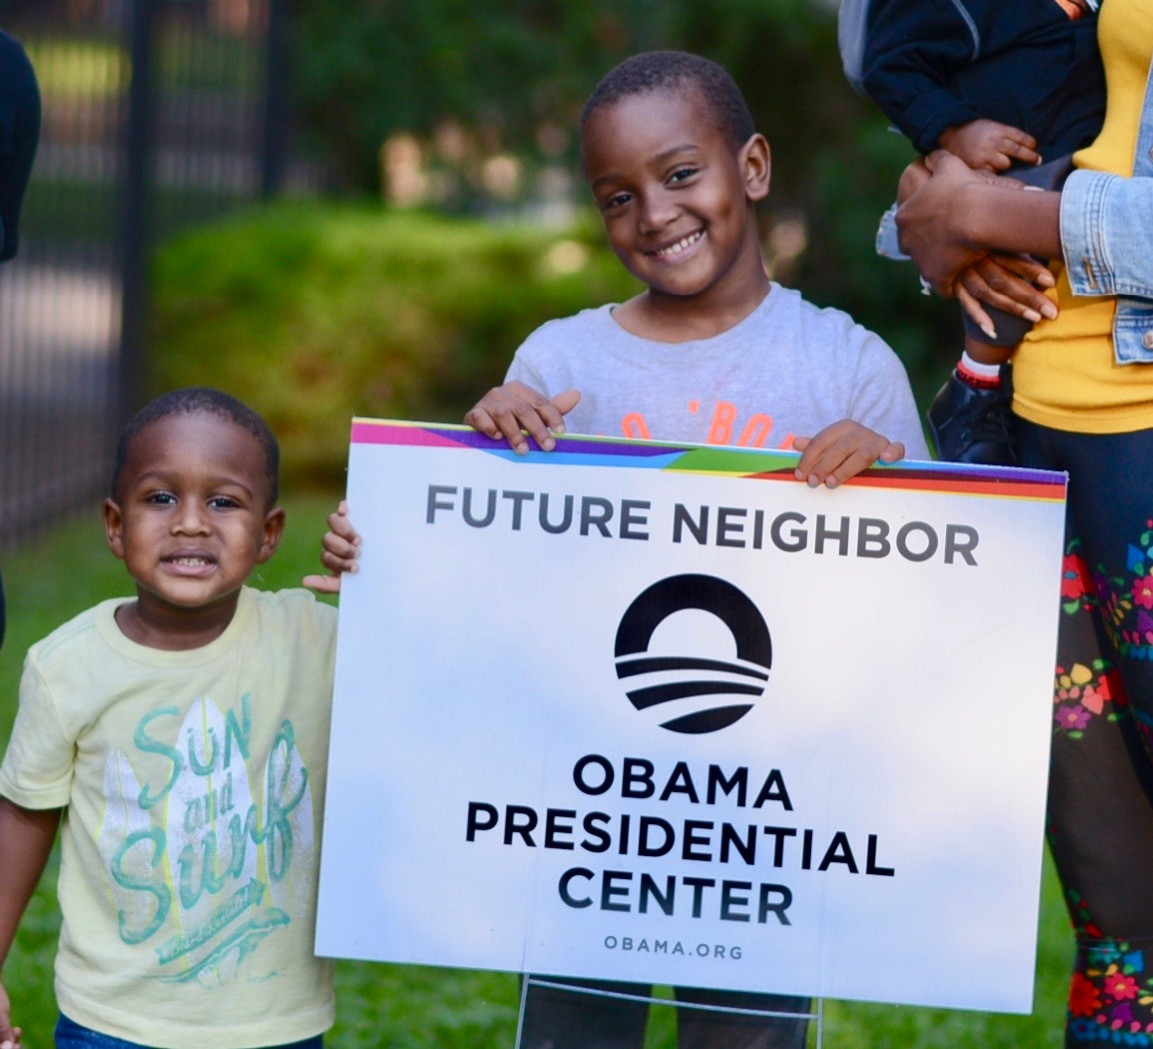 Letter of Support | South Side Neighbors 4 Hope | For the Obama